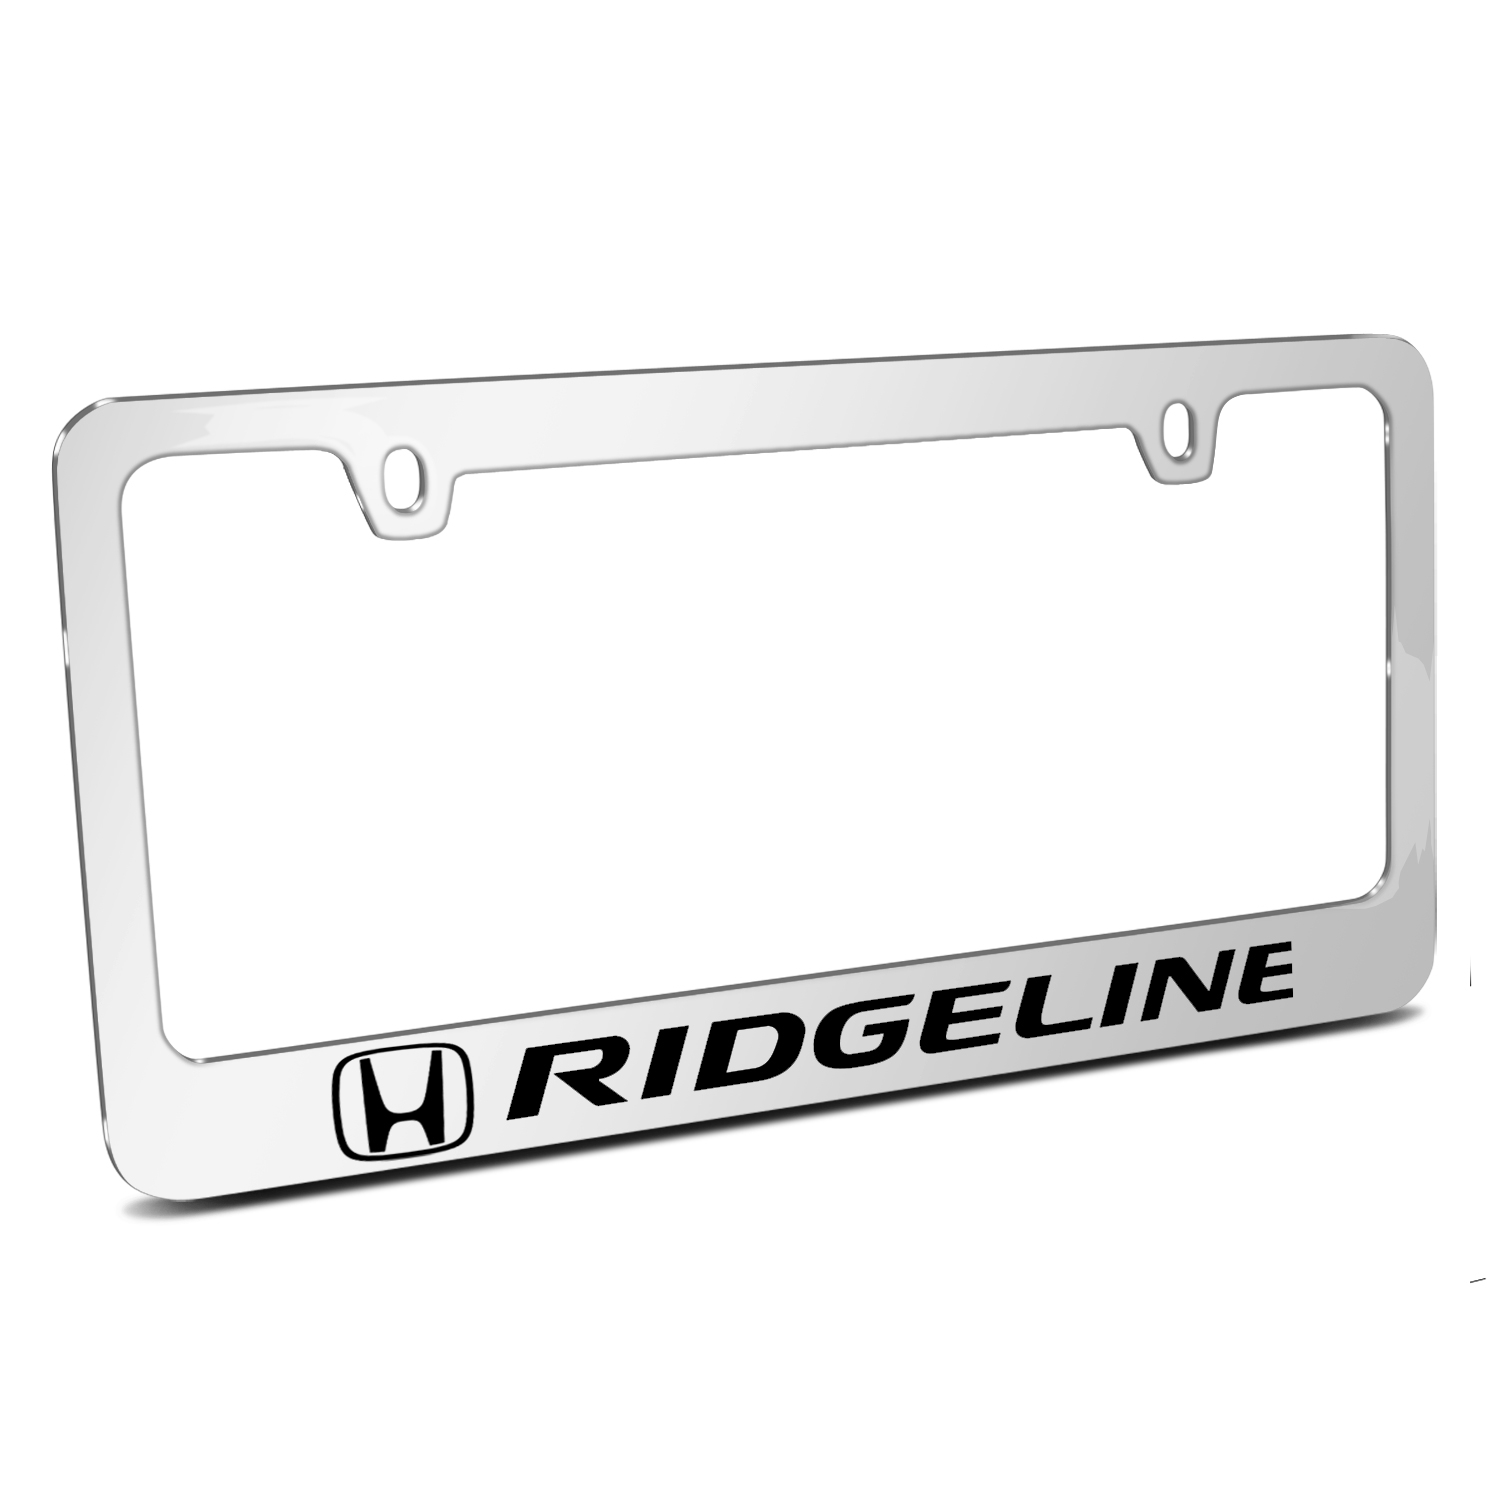 Honda Ridgeline Mirror Chrome Metal License Plate Frame